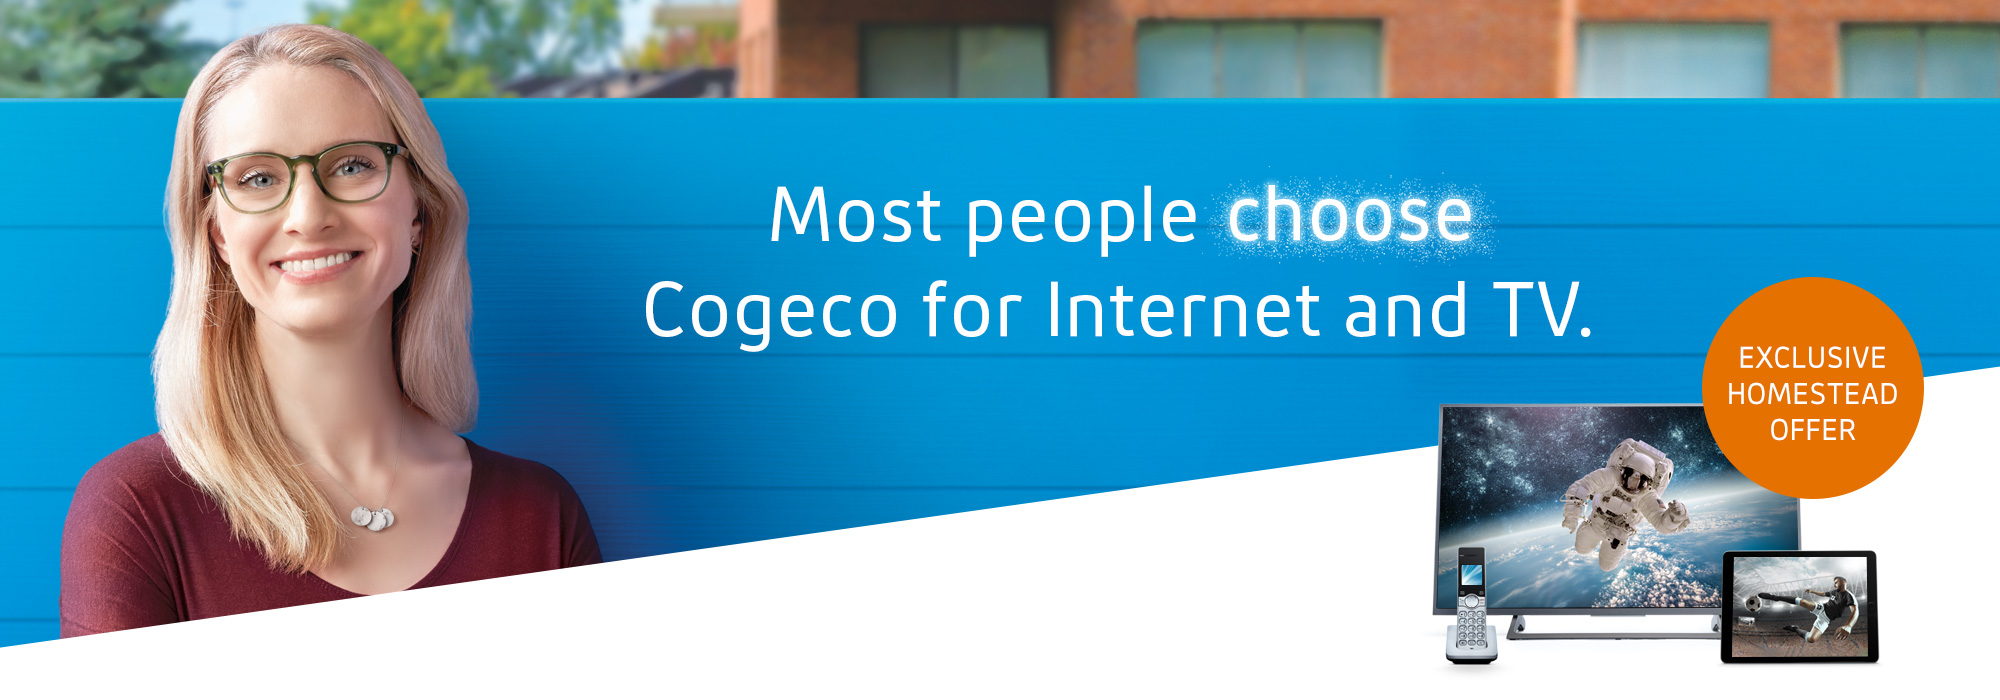 Most people choose Cogeco for Internet and TV